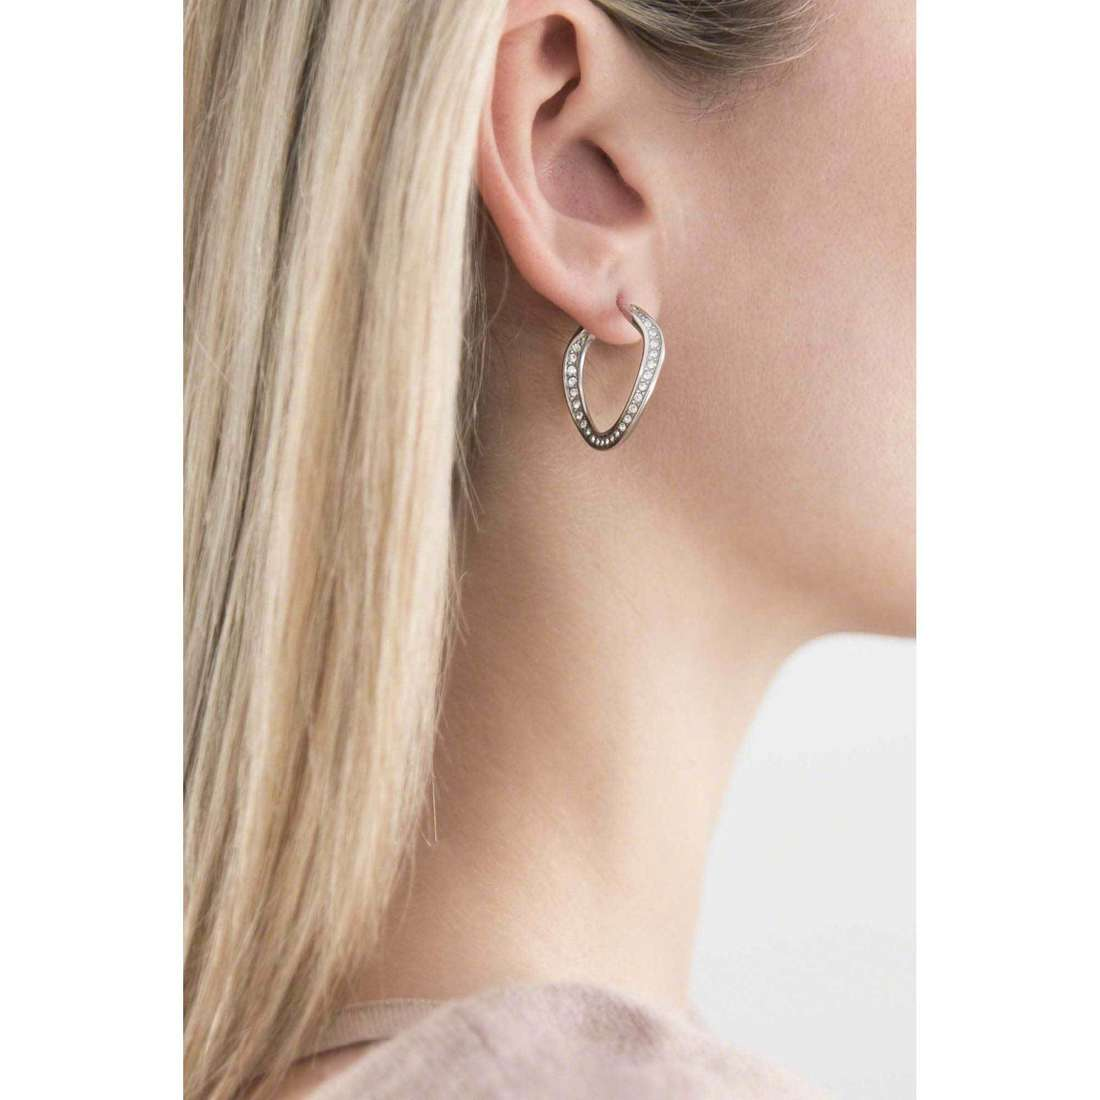 Fossil boucles d'oreille femme JF01144040 indosso